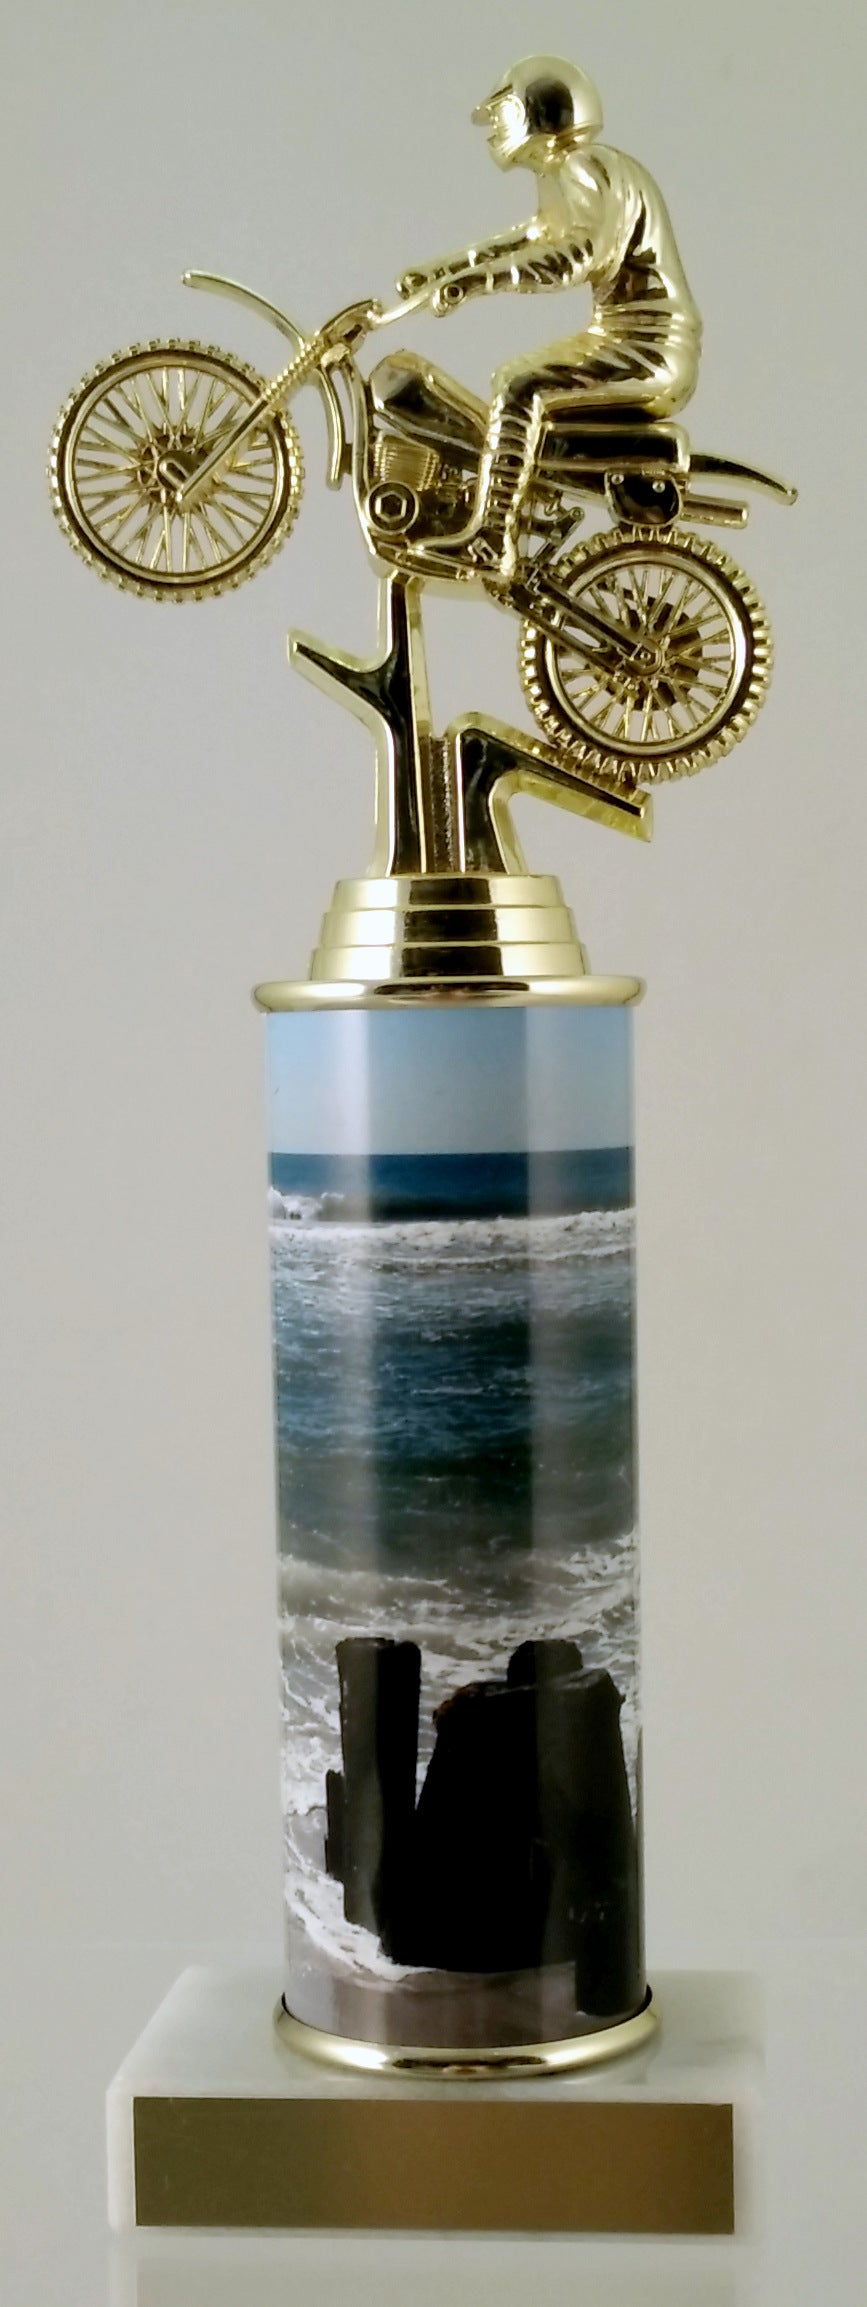 Dirt Bike Trophy With Beach Metal Column On Marble-Trophy-Schoppy's Since 1921